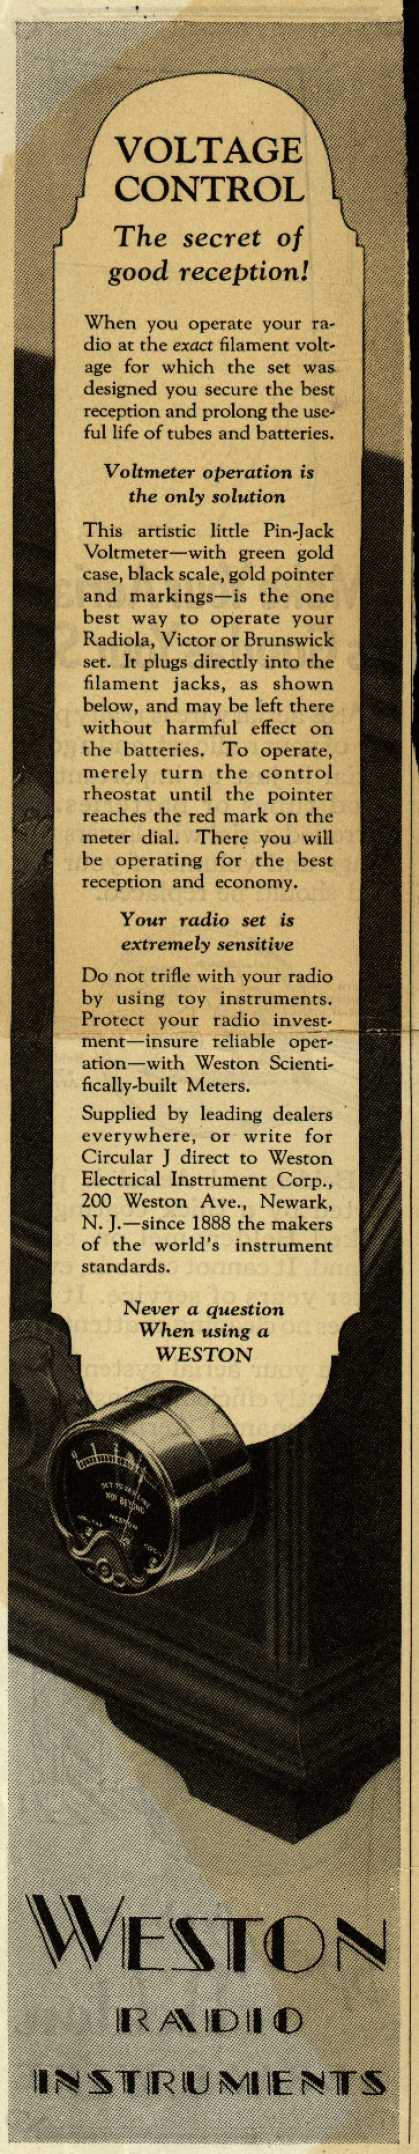 Weston Electrical Instrument Corp.'s Pin-Jack Voltmeter – Voltage Control: the secret of good reception (1927)